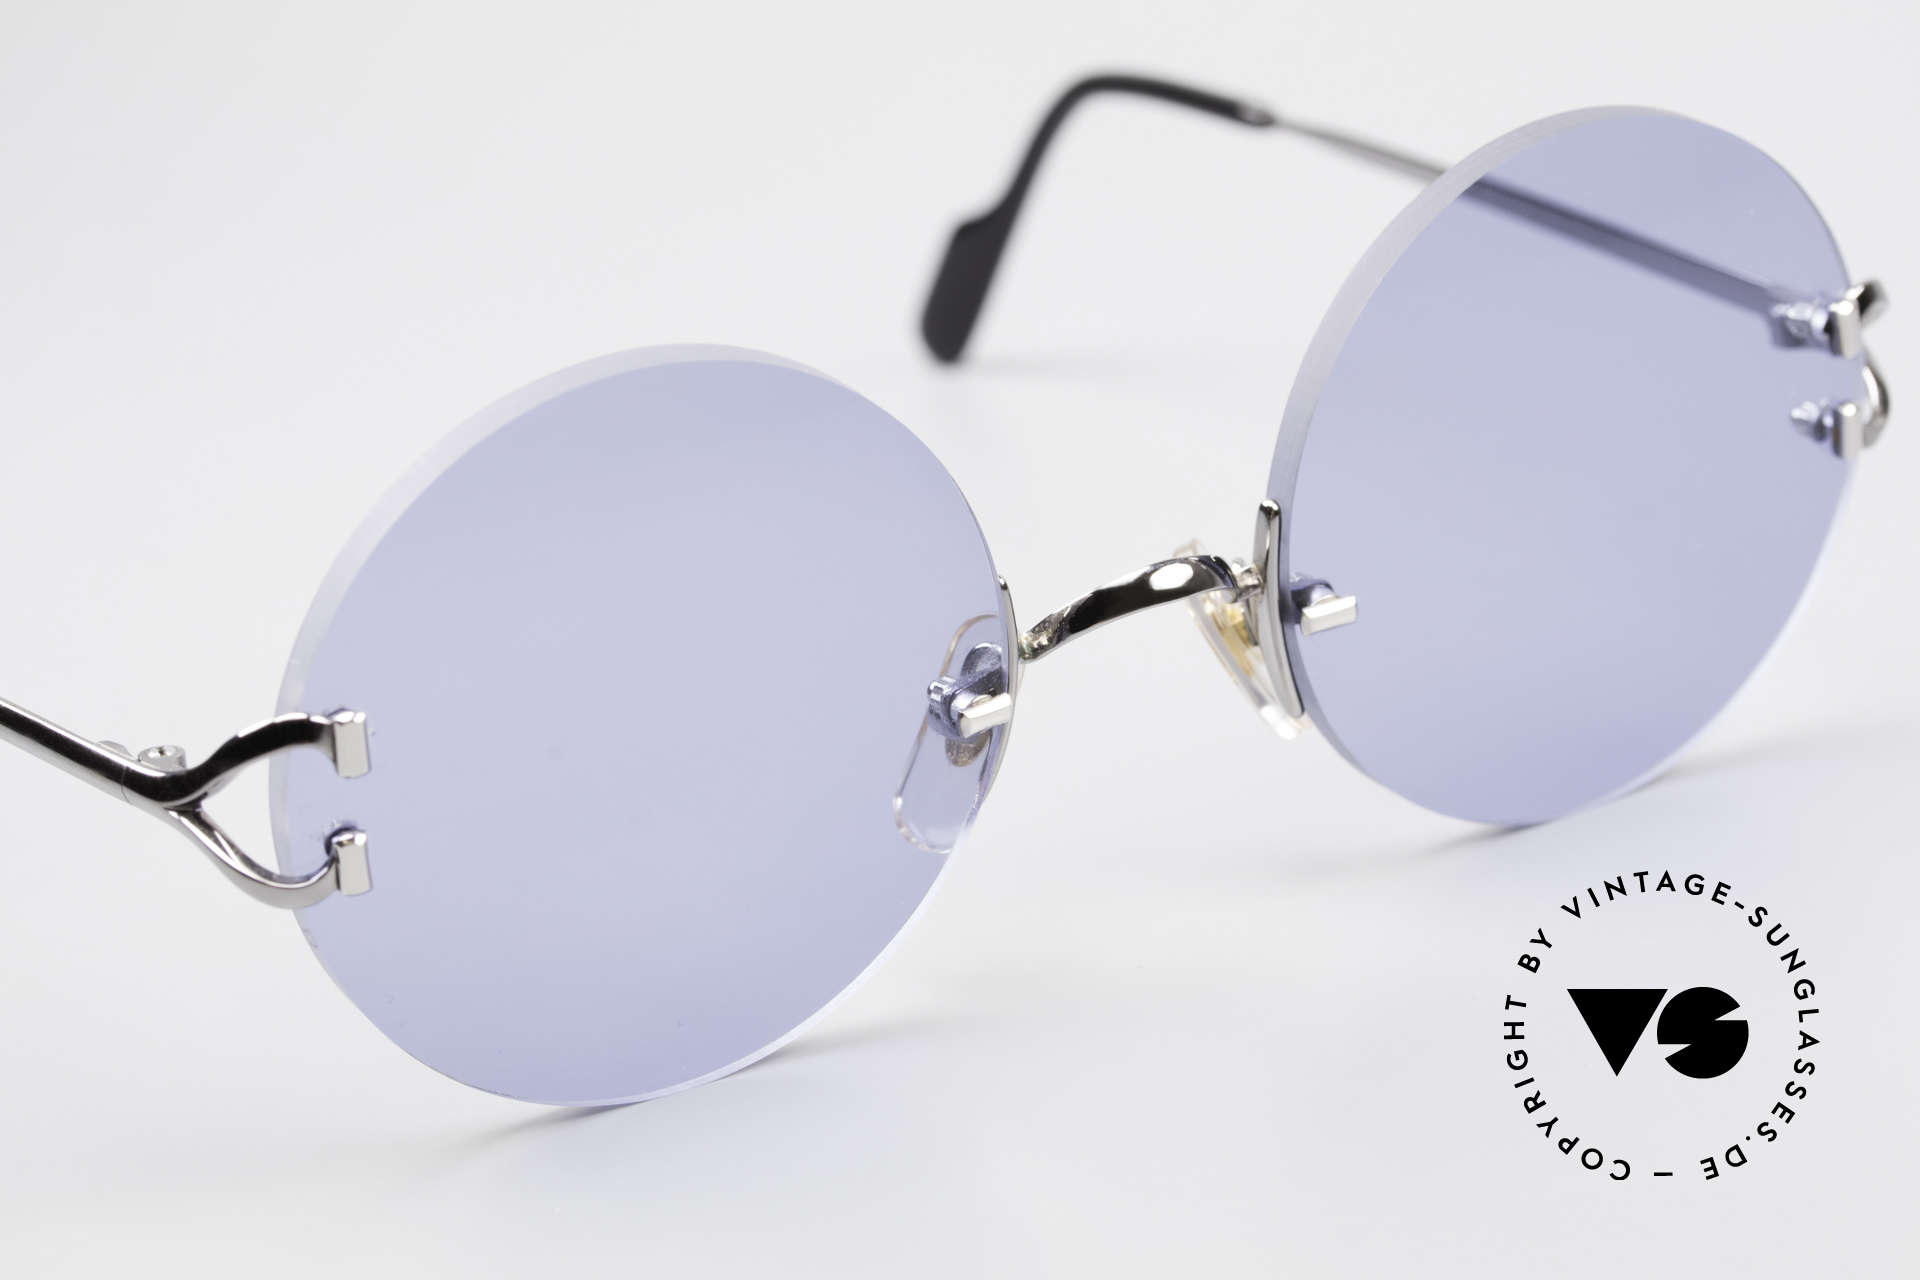 Cartier Madison Round Sunglasses Gunmetal, 135mm temples & 130mm width = rather medium size, Made for Men and Women